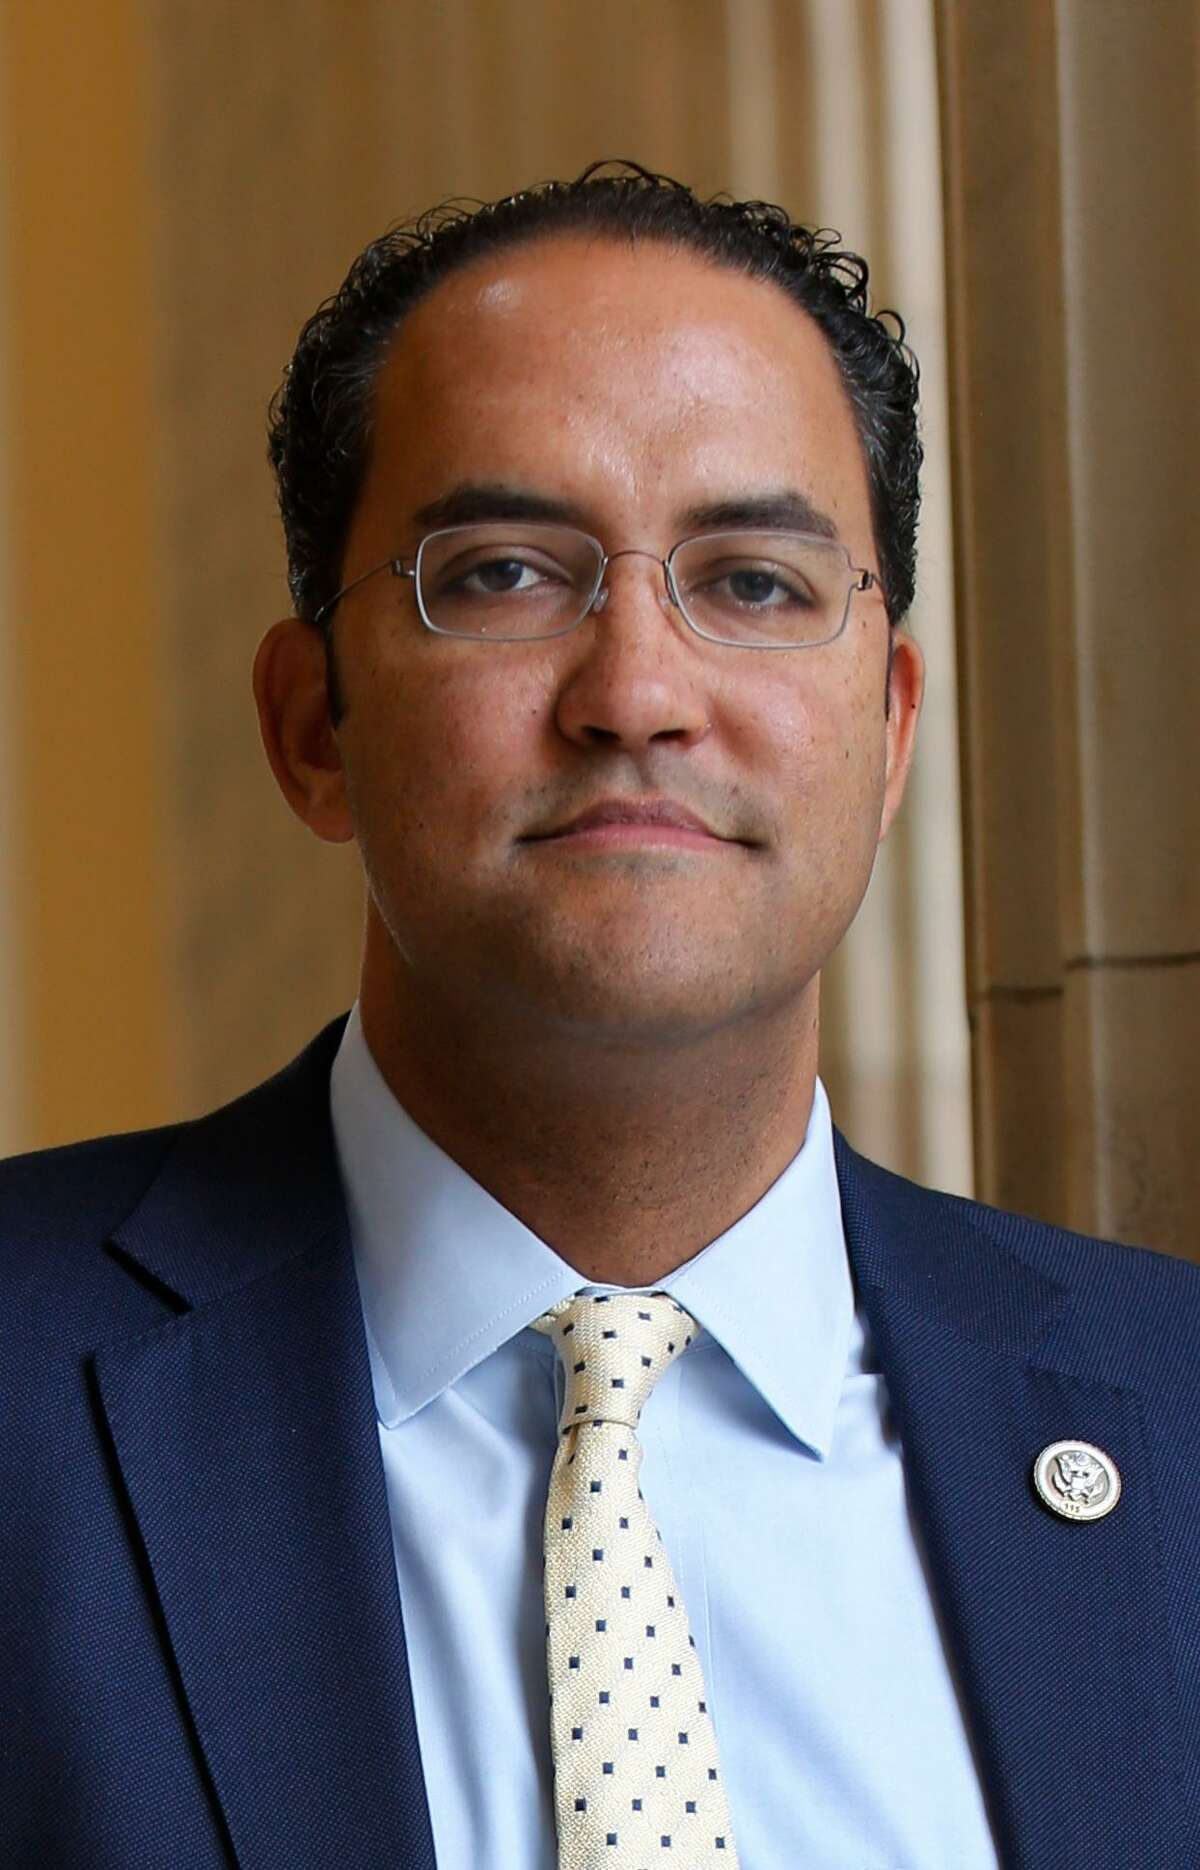 WASHINGTON, DC - January 19, 2017 - Rep. Will Hurd, R-TX, in the rotunda of the Cannon Building where his office is.